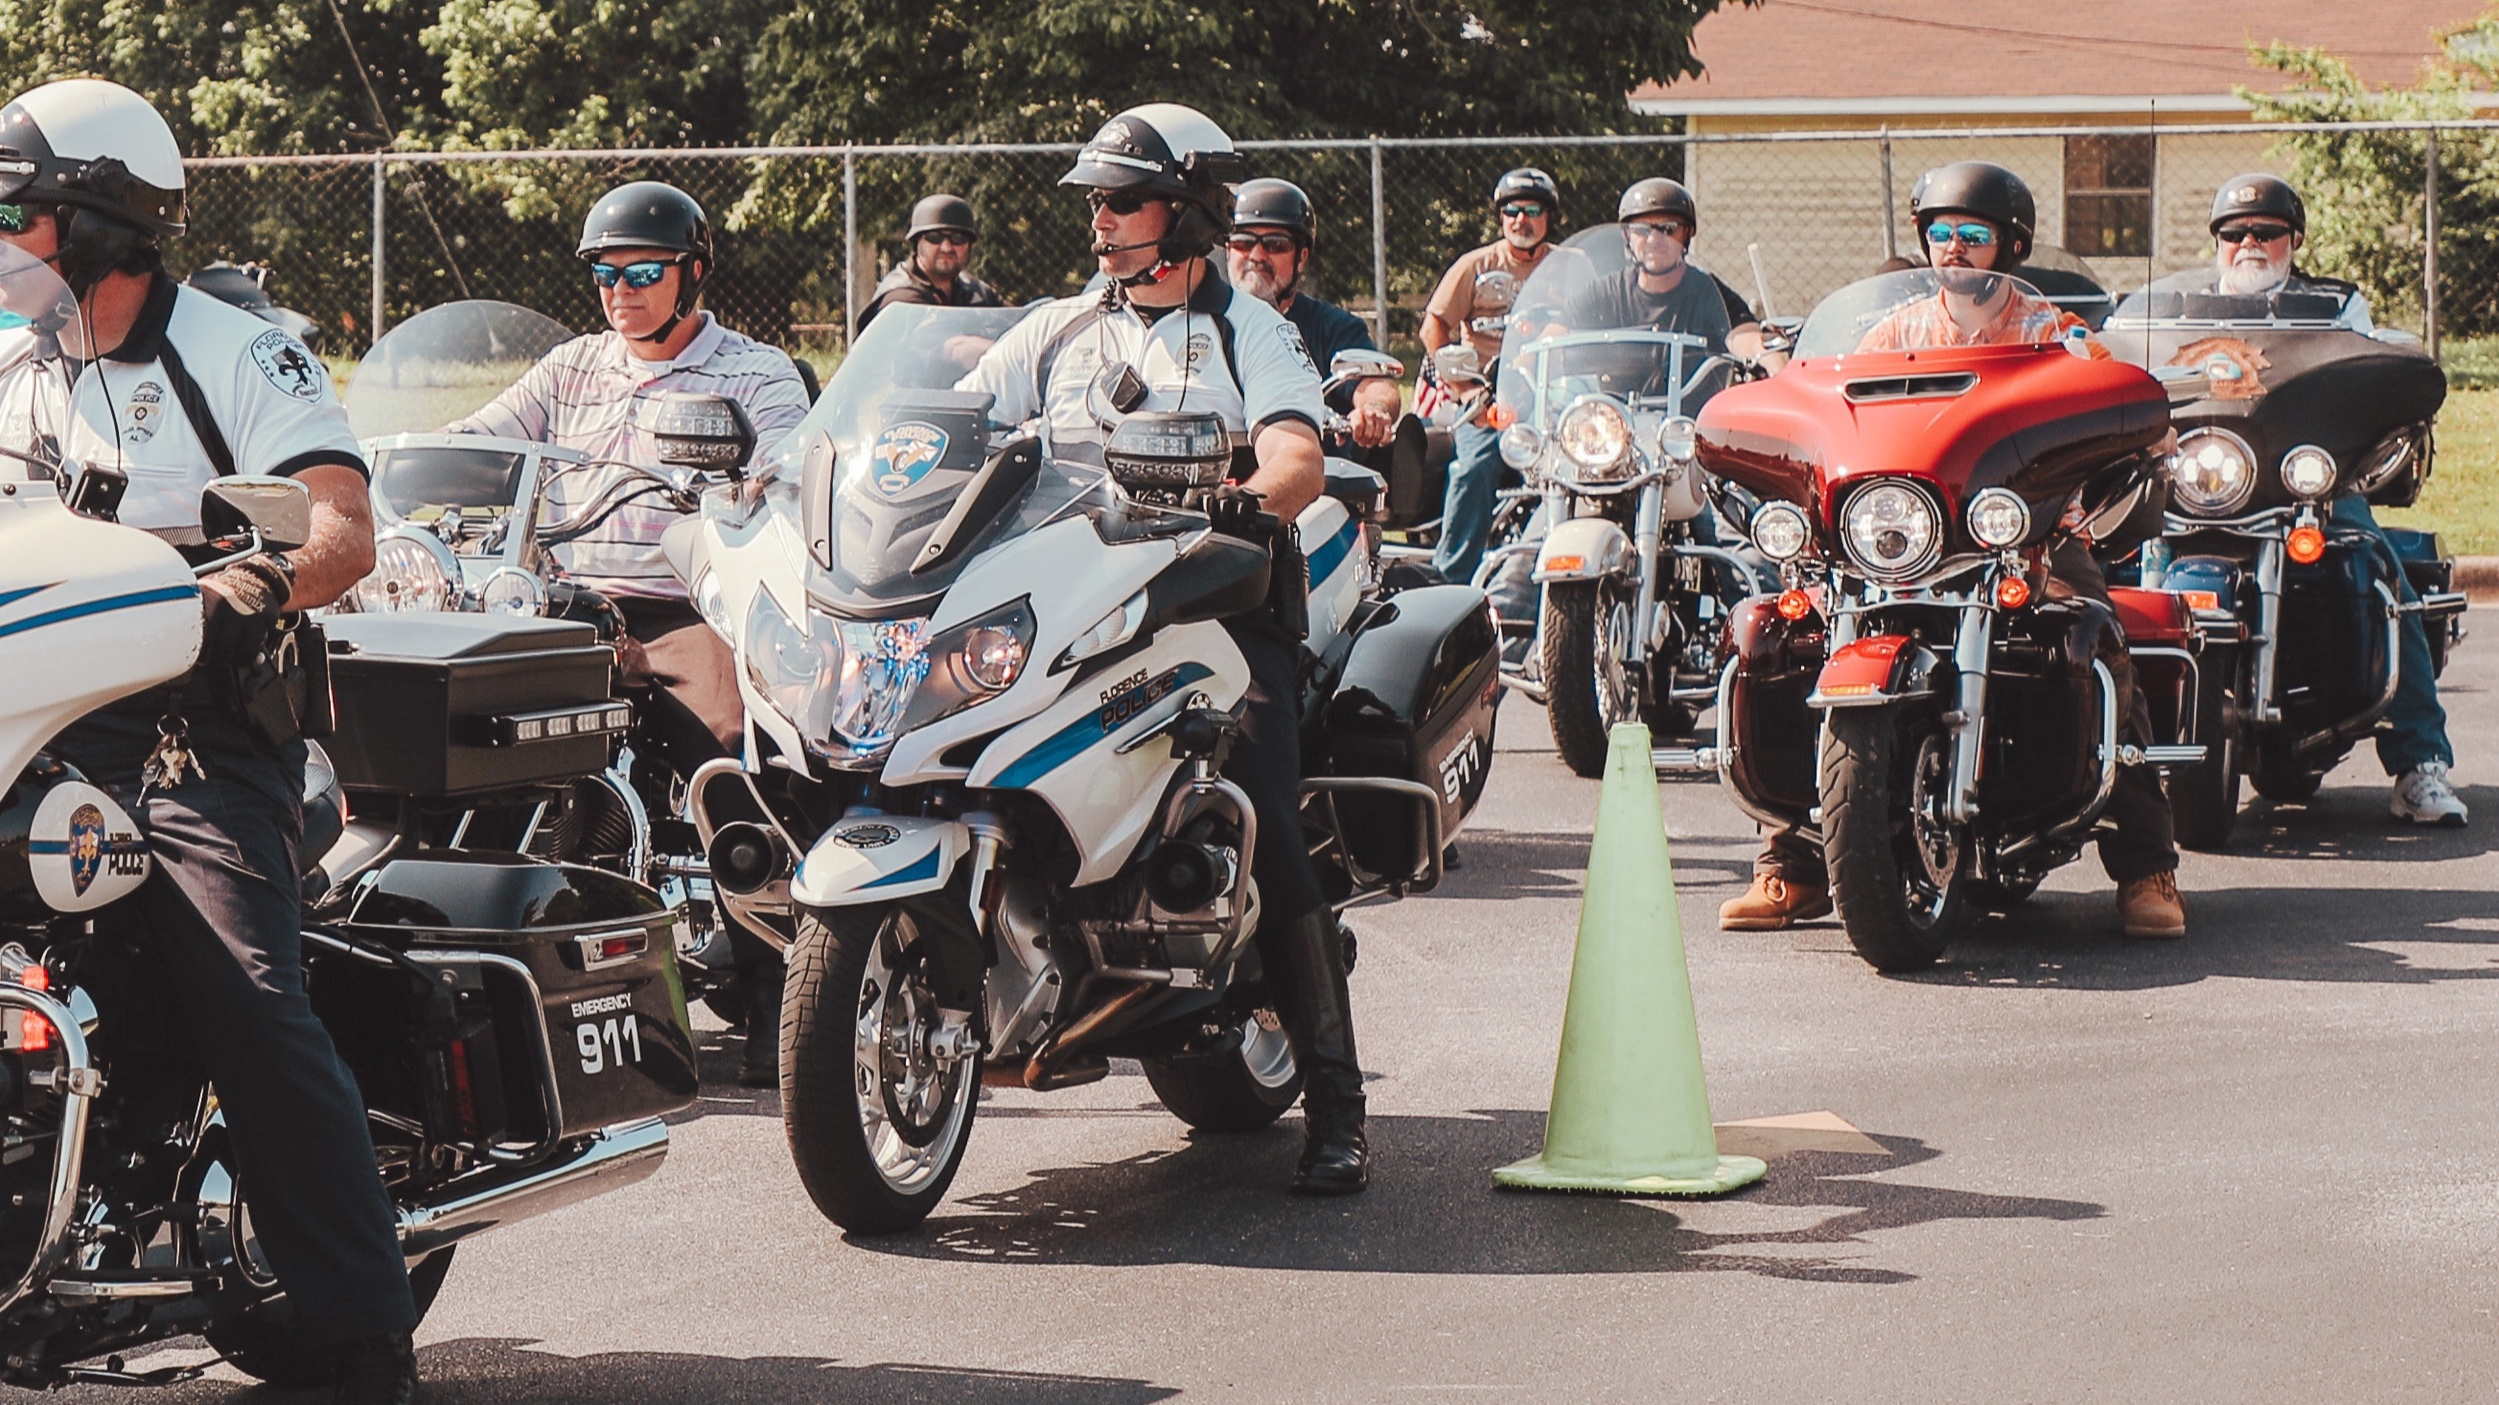 Motorcycle Ride - Arrive anytime from 8:30 and 9:00 AM to register for the Motorcycle Ride.Motorcycle Ride:Florence: 9:00 - 10:30 AMLawrenceburg: 9:45 - 11:00 AM* Juice, and Coffee will be provided.* For every motorcycle registered Faith Church will donate $20 to St. Jude Children's Research Hospital.